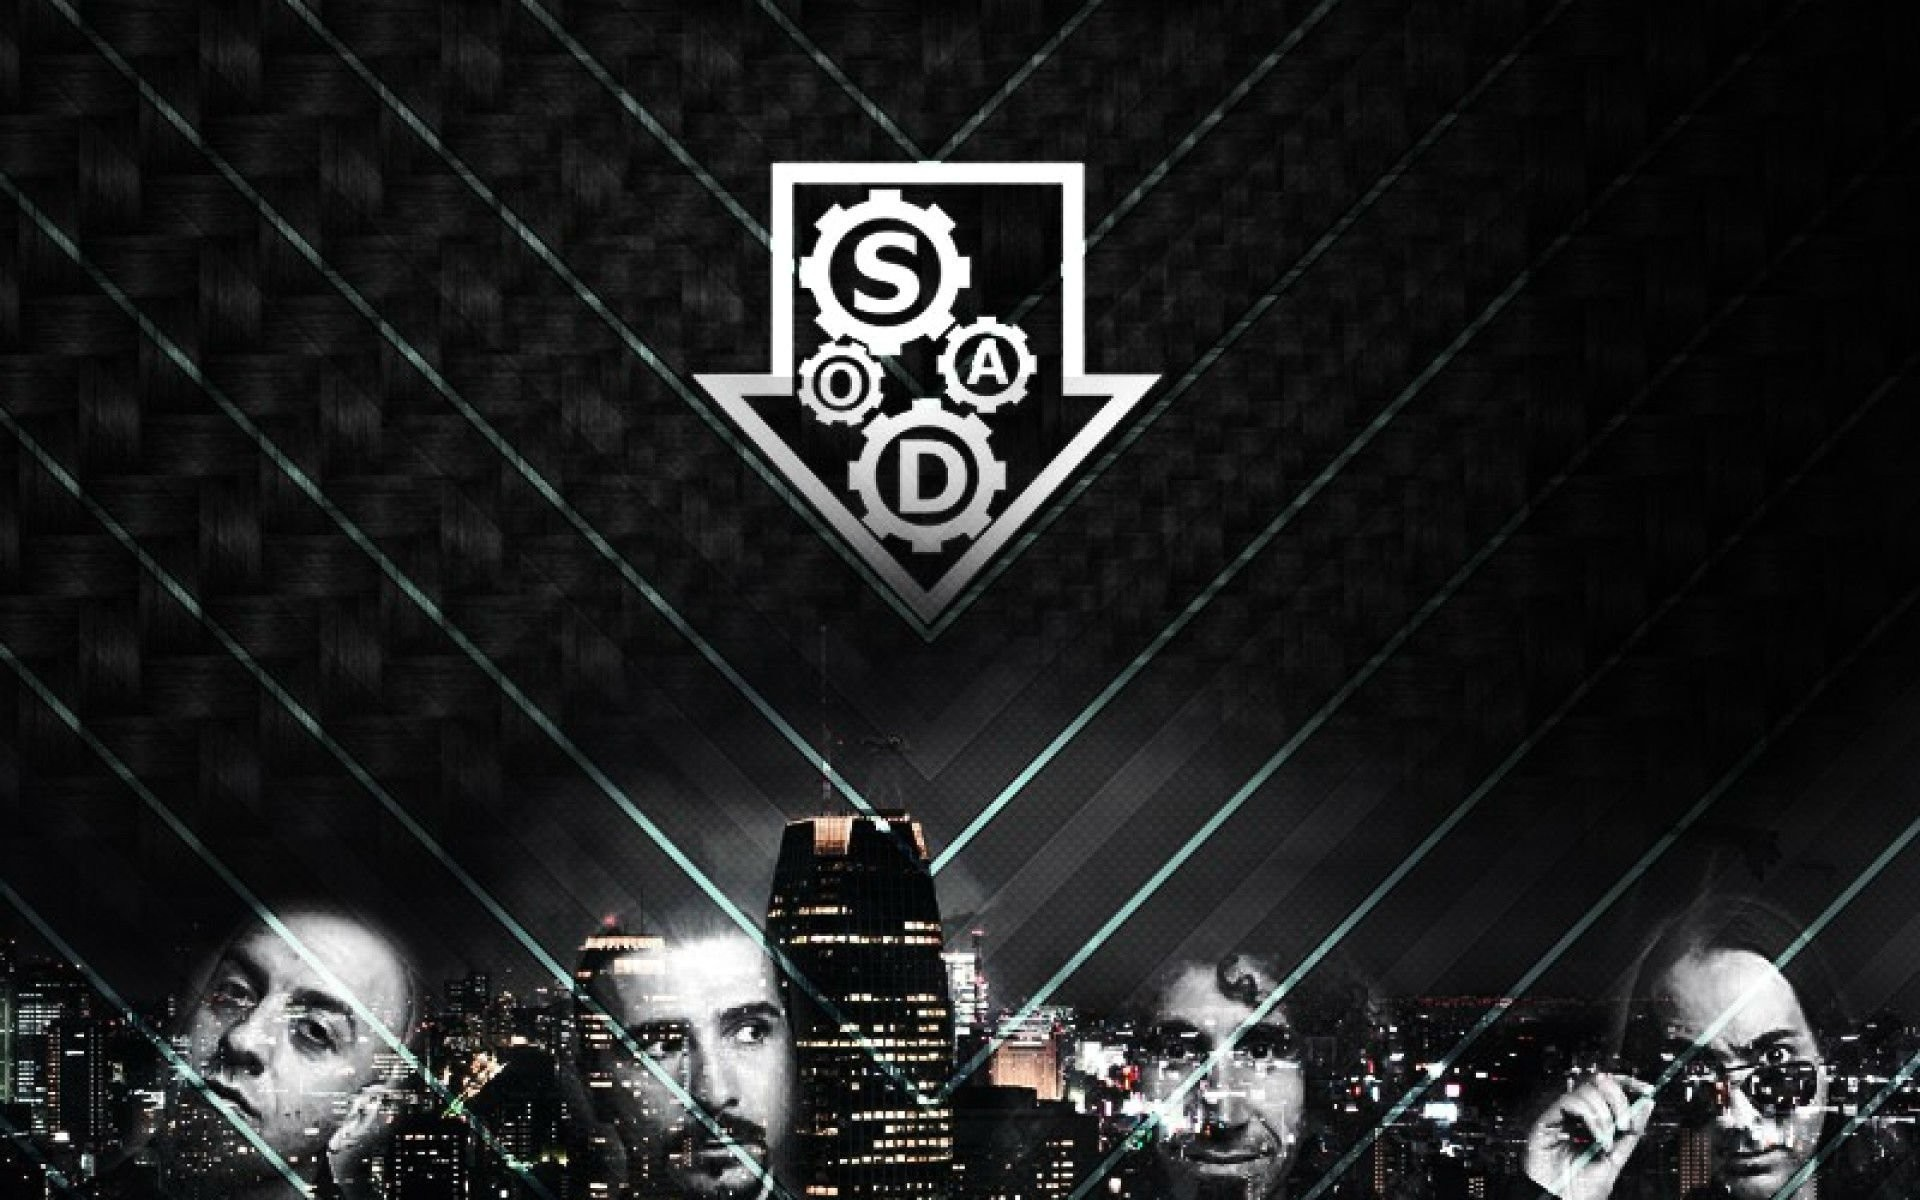 Soad Wallpaper 72 Pictures